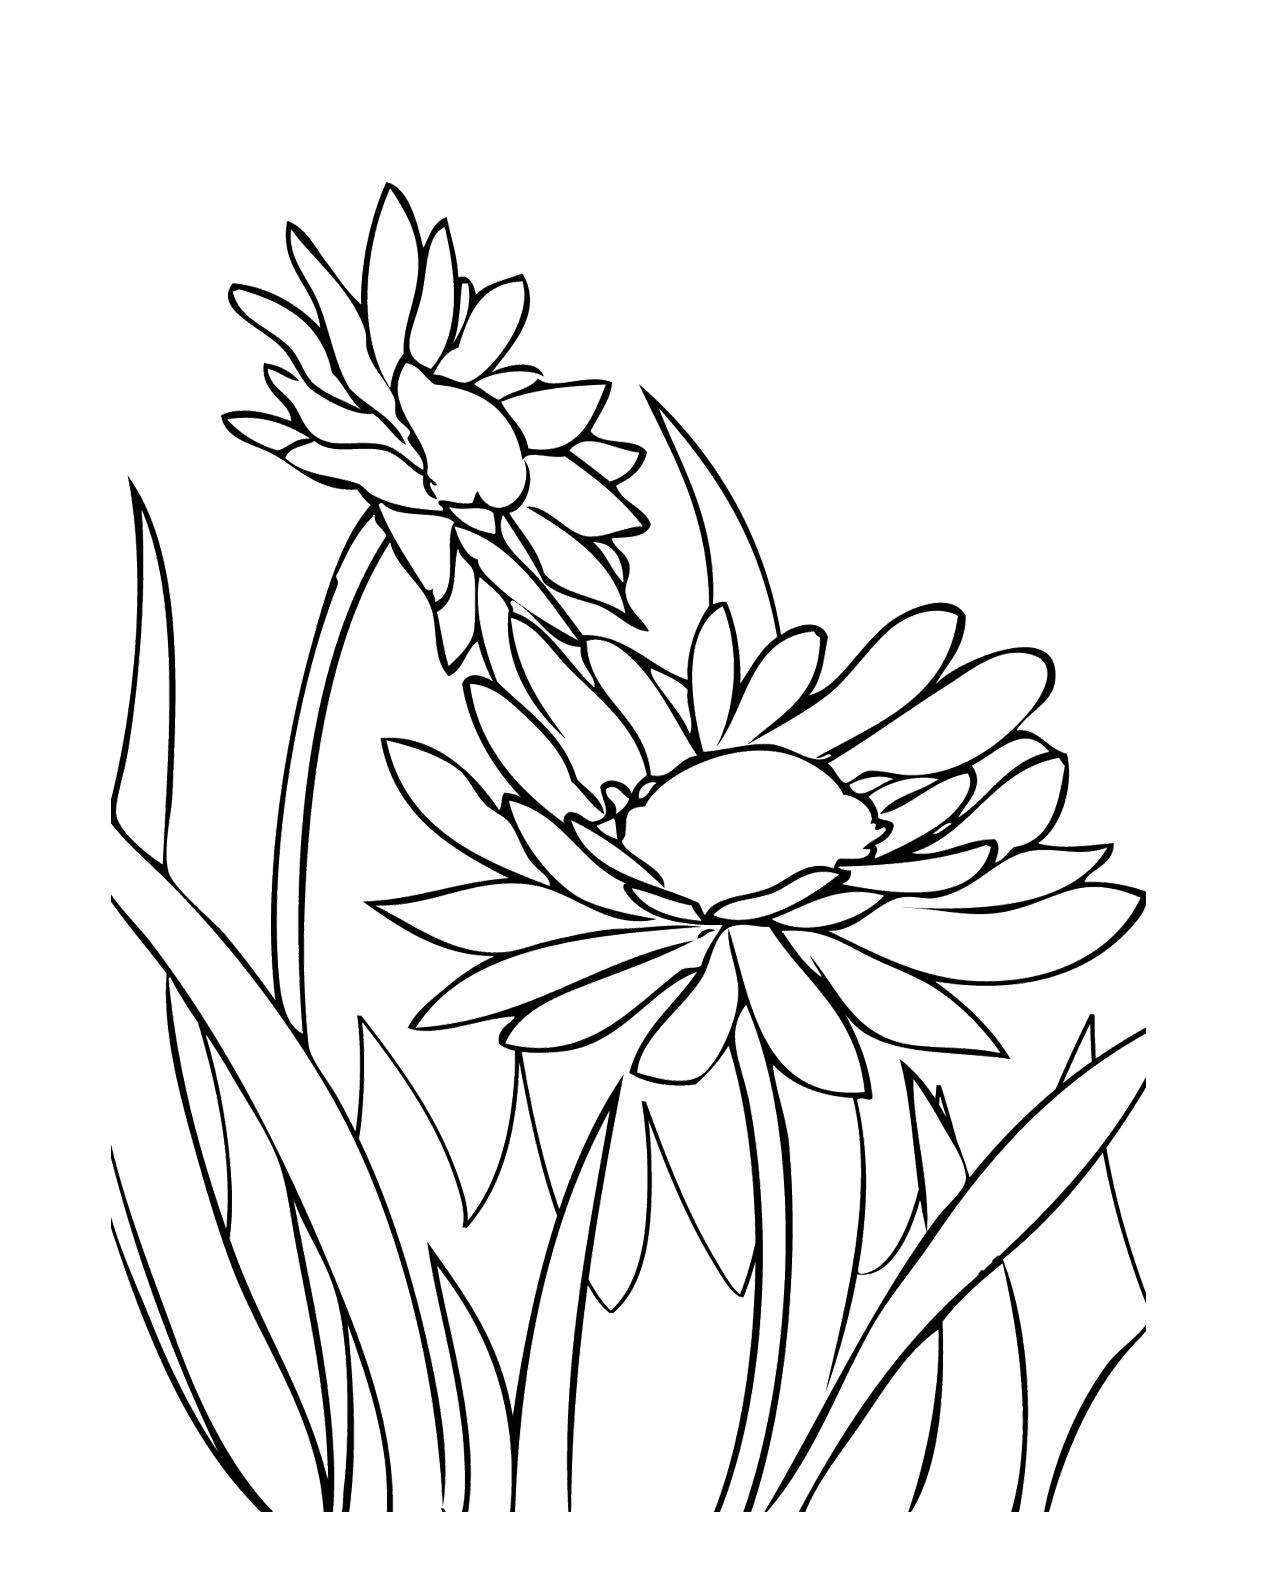 flower mosaic coloring pages mosaic drawing patterns free download on clipartmag coloring flower mosaic pages